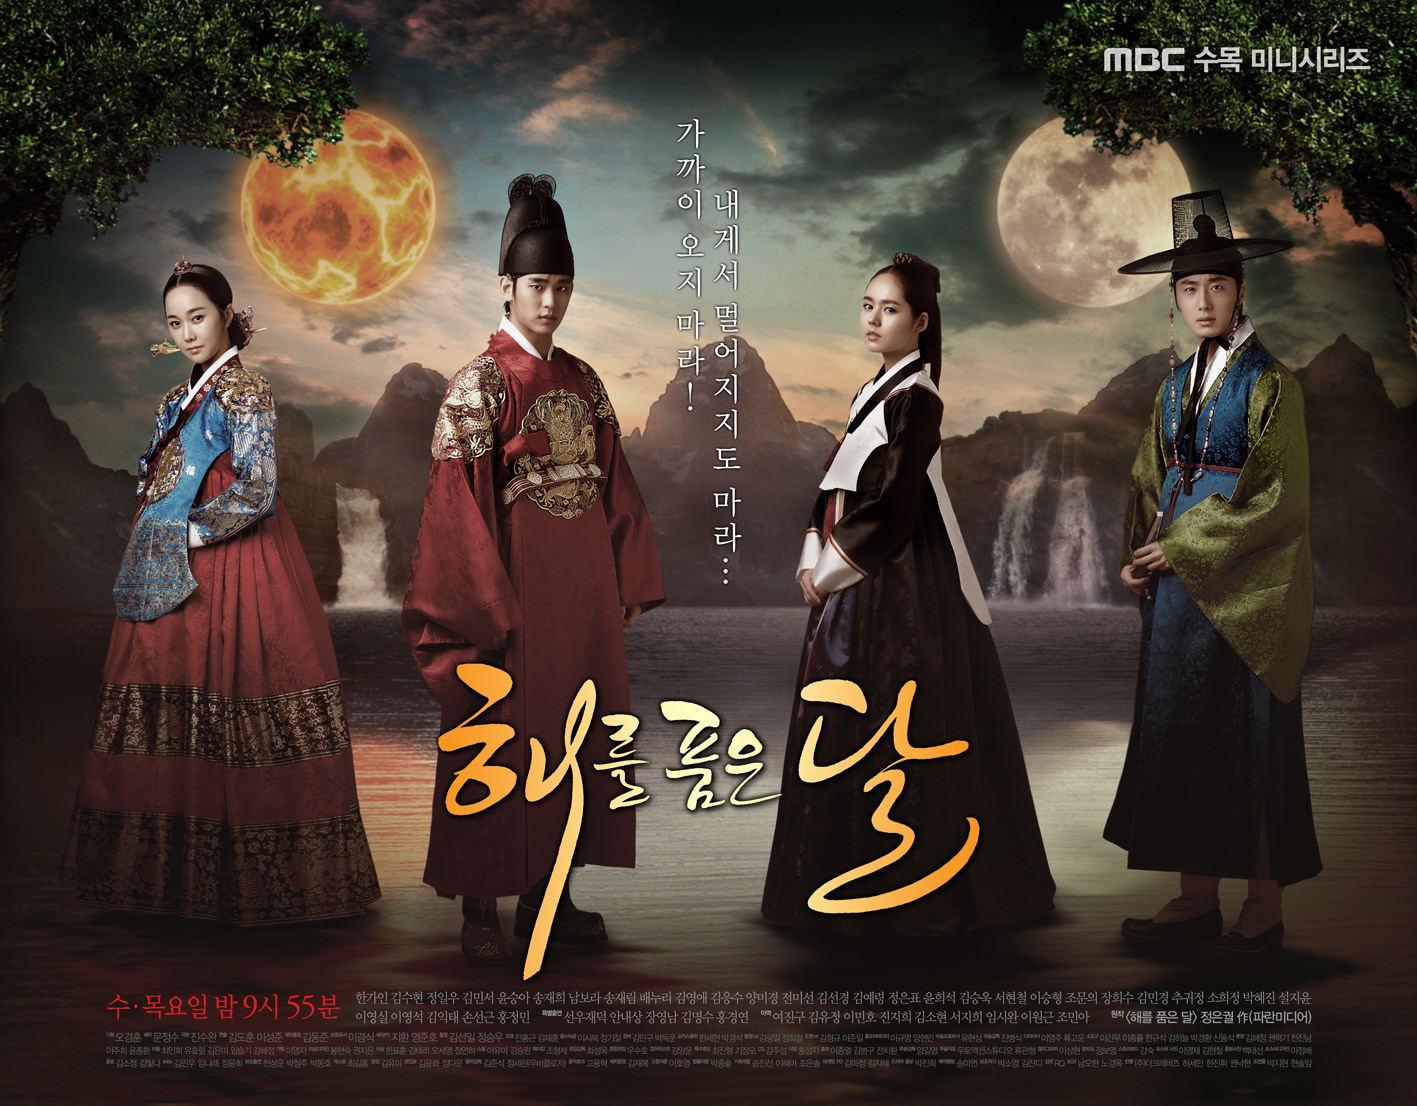 Drama 2012] The Moon that Embraces the Sun 해를 품은 달 - k-dramas & movies - Soompi Forums